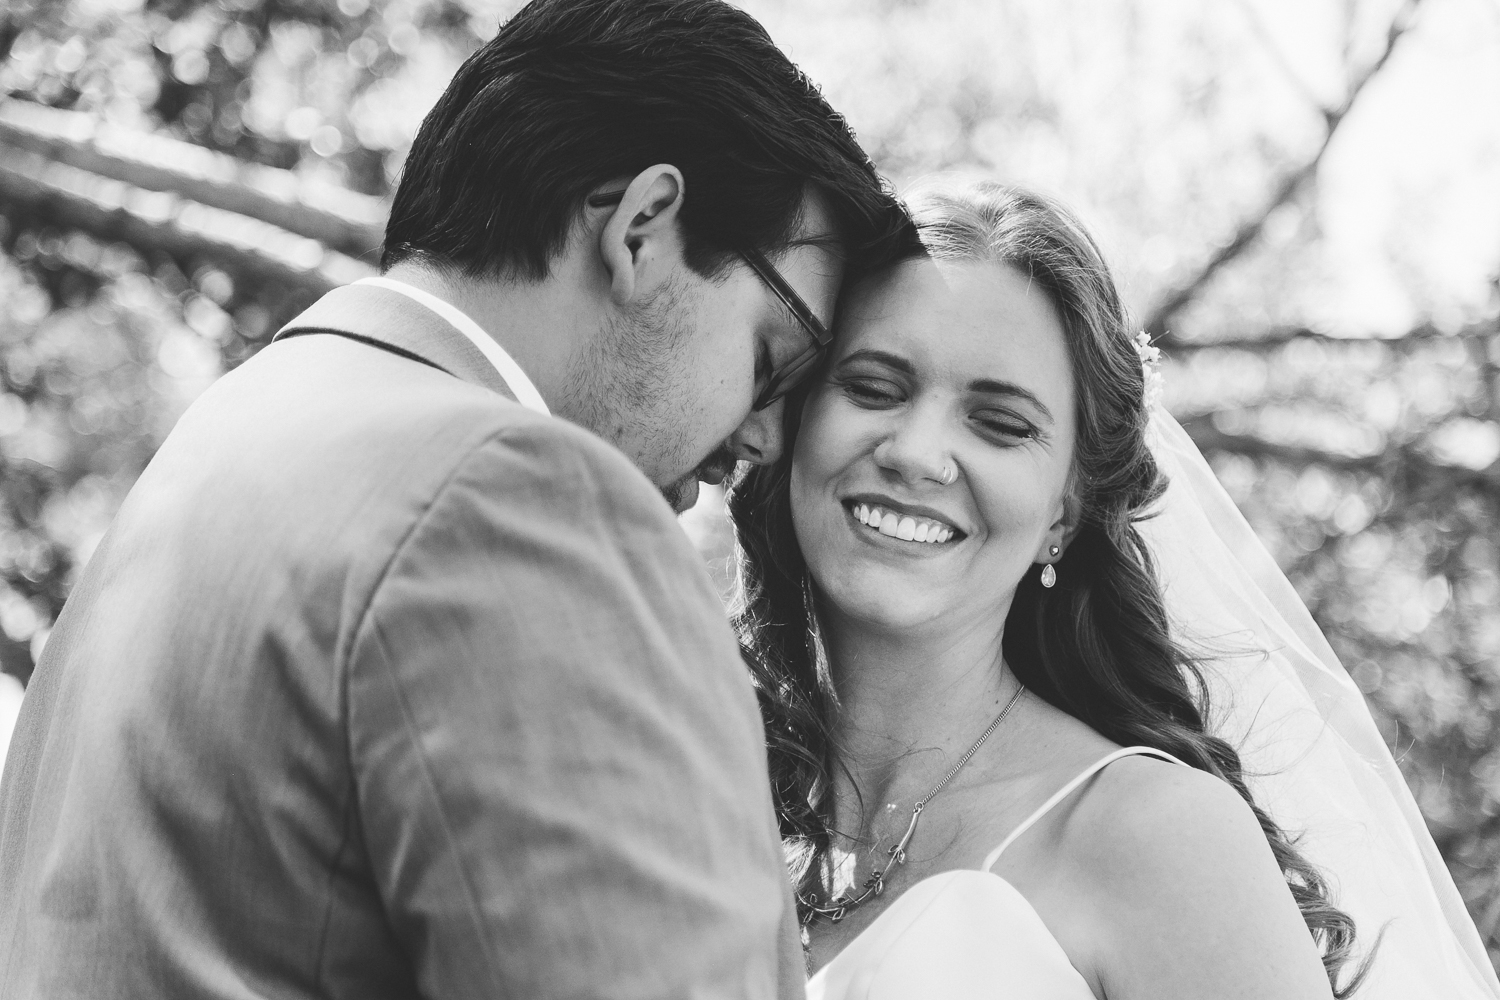 lethbridge-wedding-photographer-love-and-be-loved-photography-dan-tynnea-picture-image-photo-45.jpg